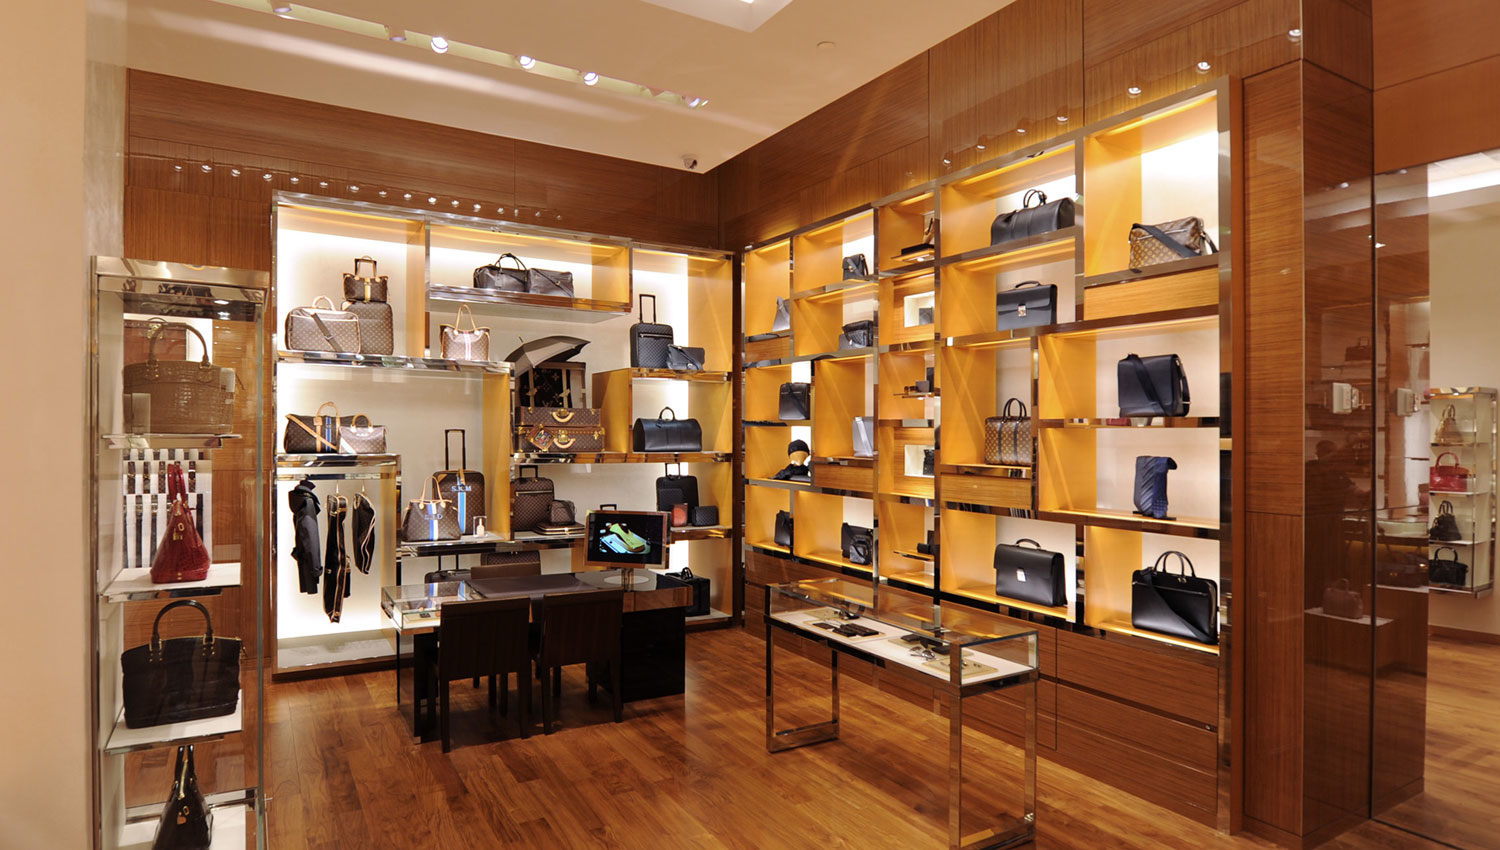 Louis Vuitton New York Saks Fifth Ave image 1